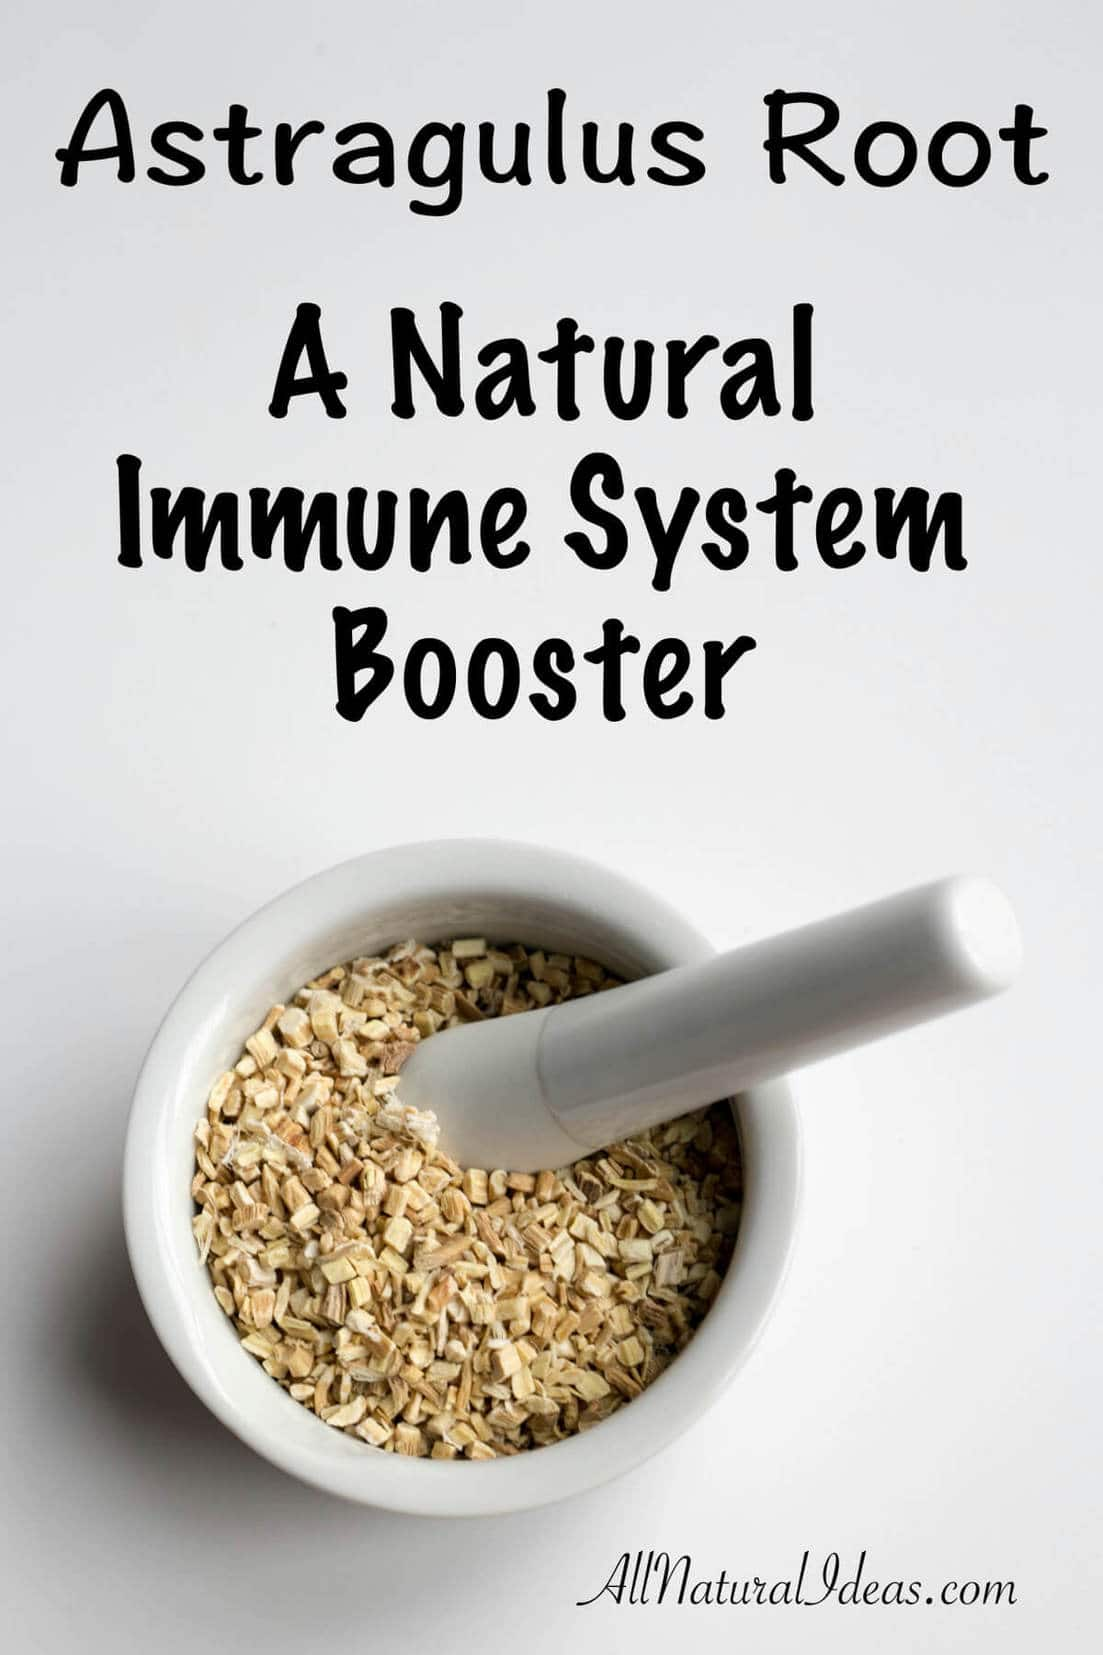 Looking for a natural immune system booster? Want to fight off the cold and flu? Consider using astragalus root to keep your immune system strong!